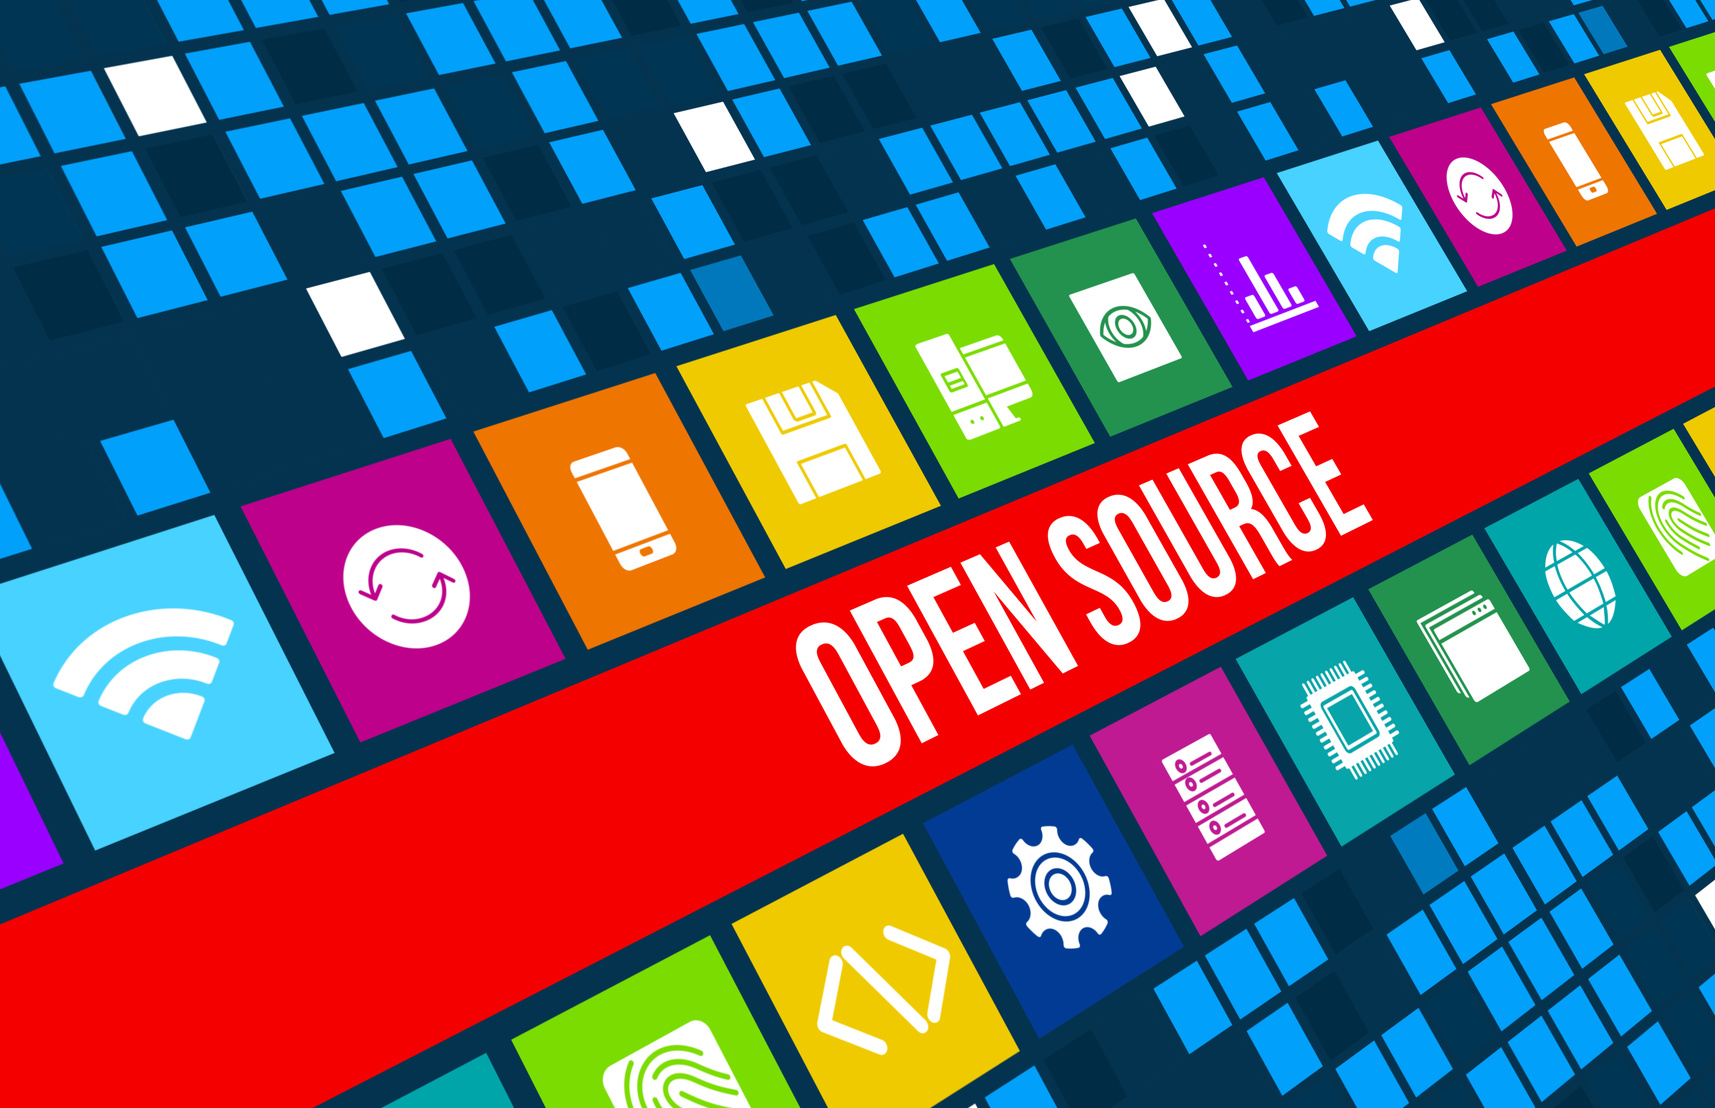 Open source concept image with business icons and